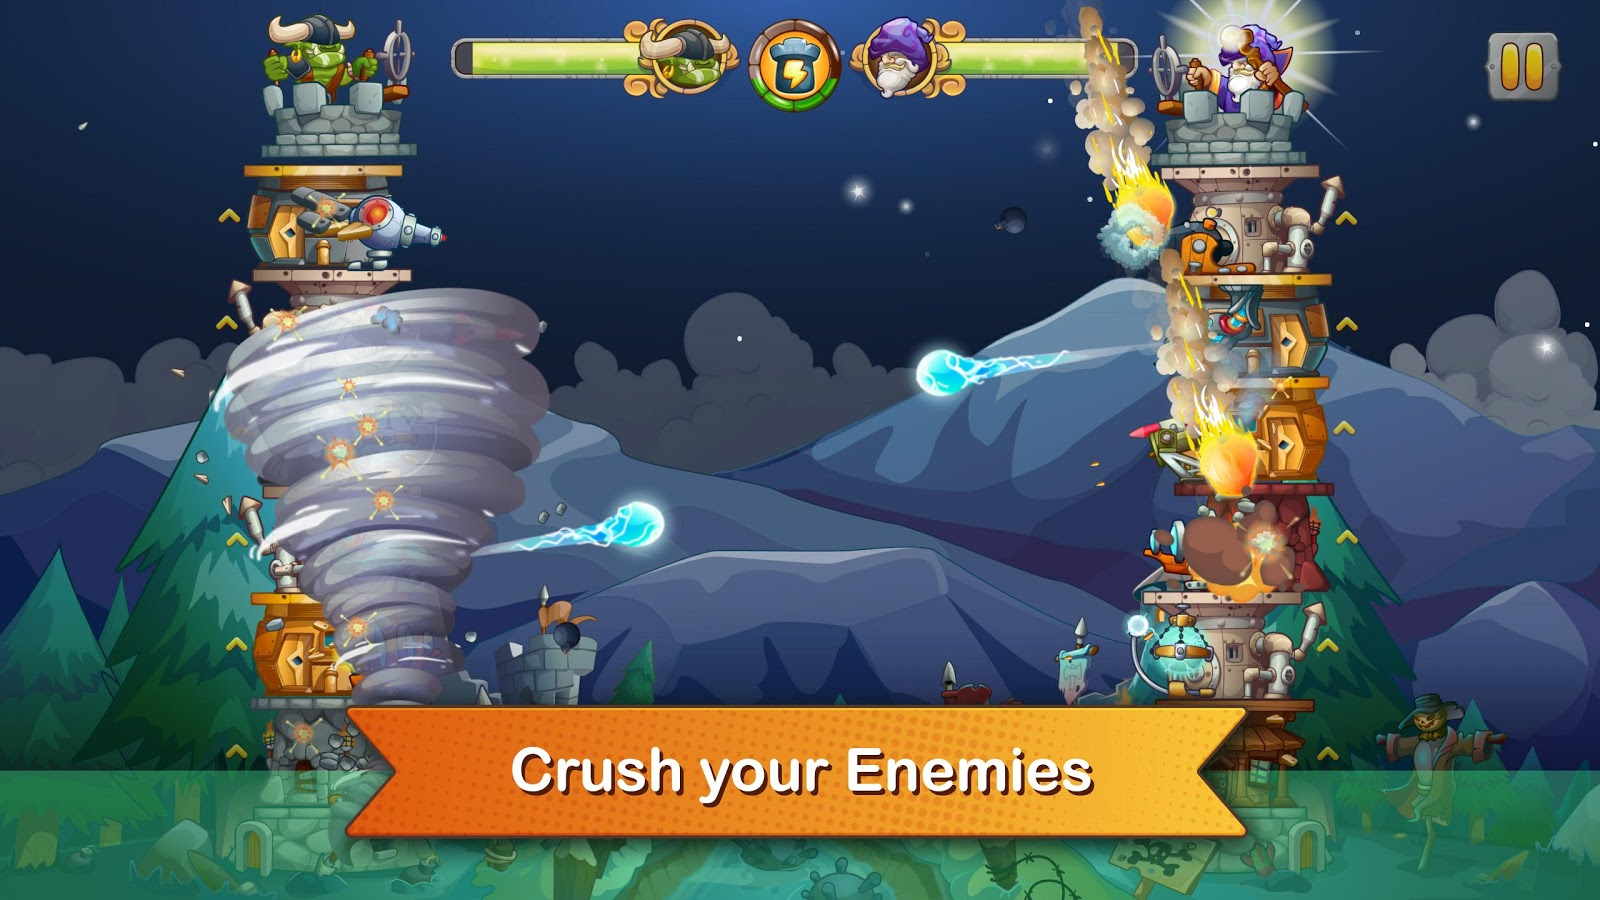 Tải game Tower Crush hack full tiền vàng cho Android